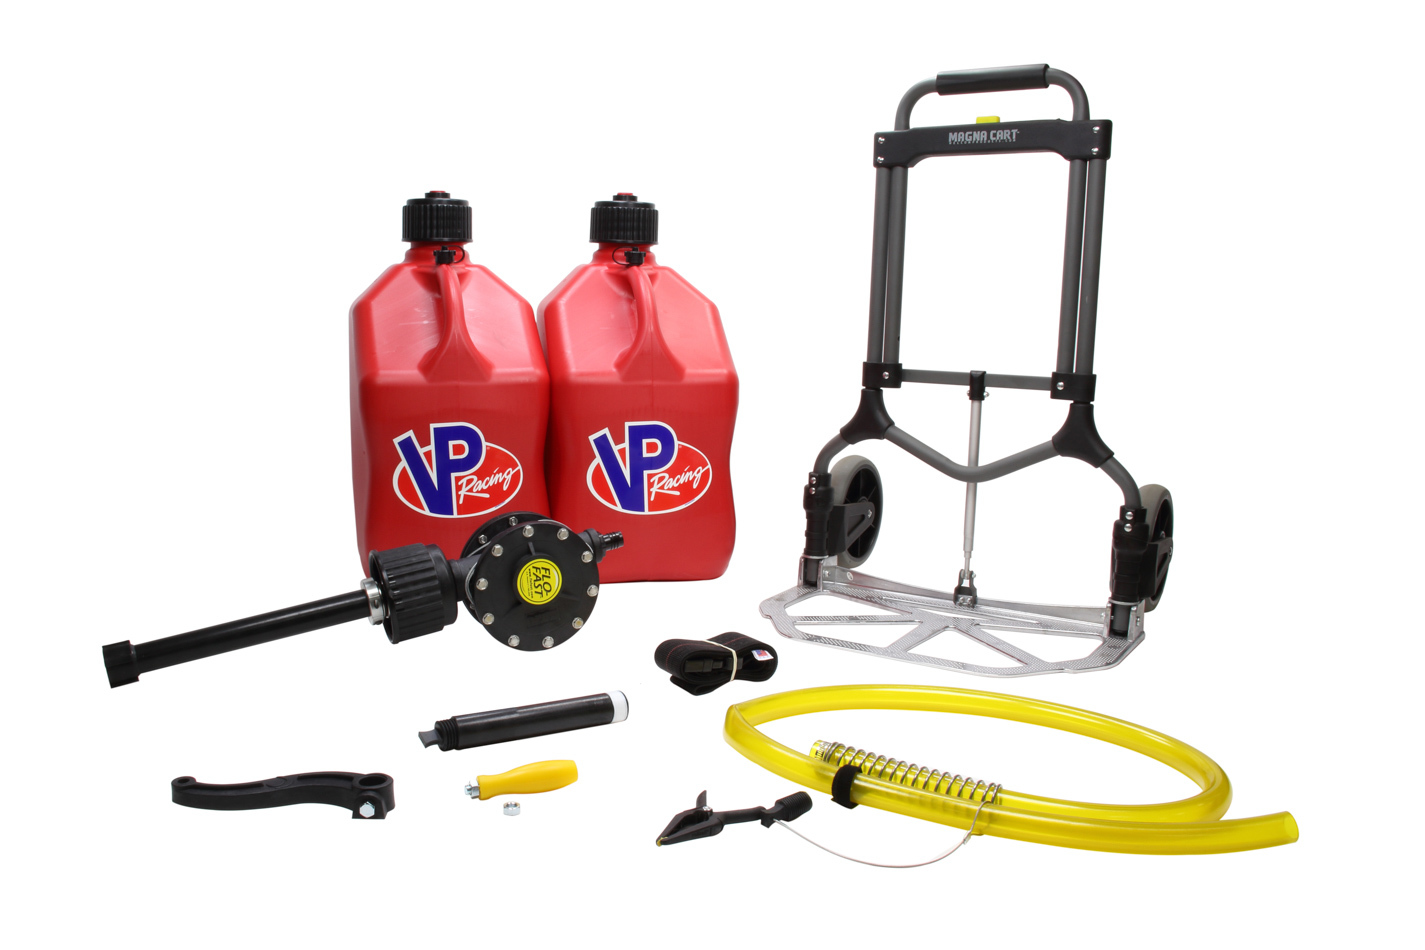 Flo-Fast 10010 Transfer Pump, Complete System, Manual, Hand Crank, Two 5 gal Jugs / Cart / Hose / Strap Included, Kit